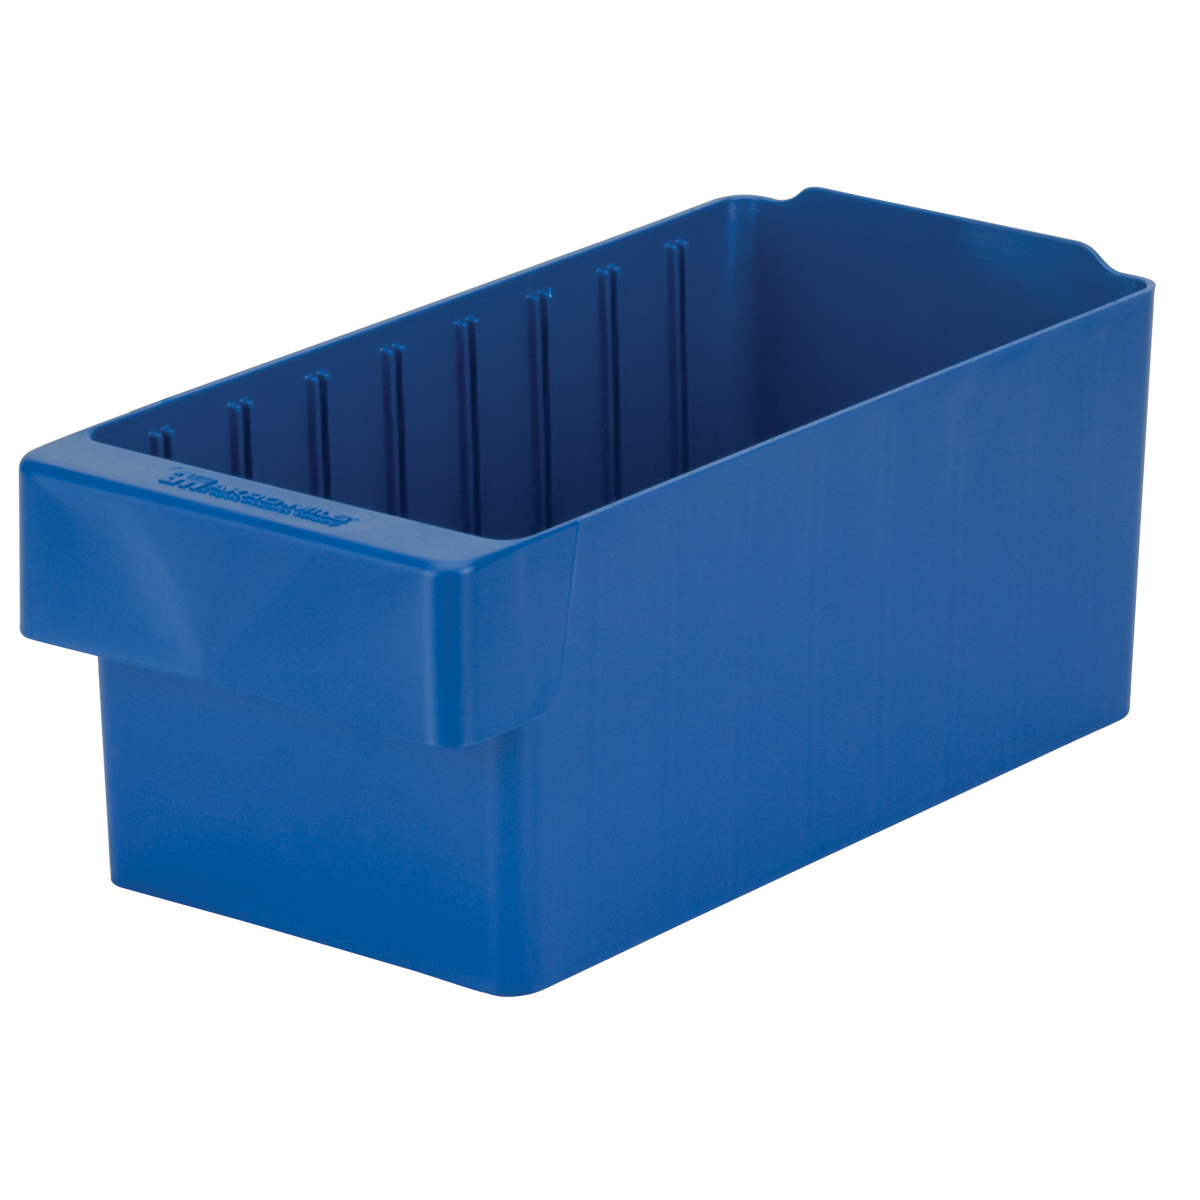 AkroDrawer 11-5/8 x 5-5/8 x 4-5/8, Blue (31162BLU).  This item sold in carton quantities of 6.